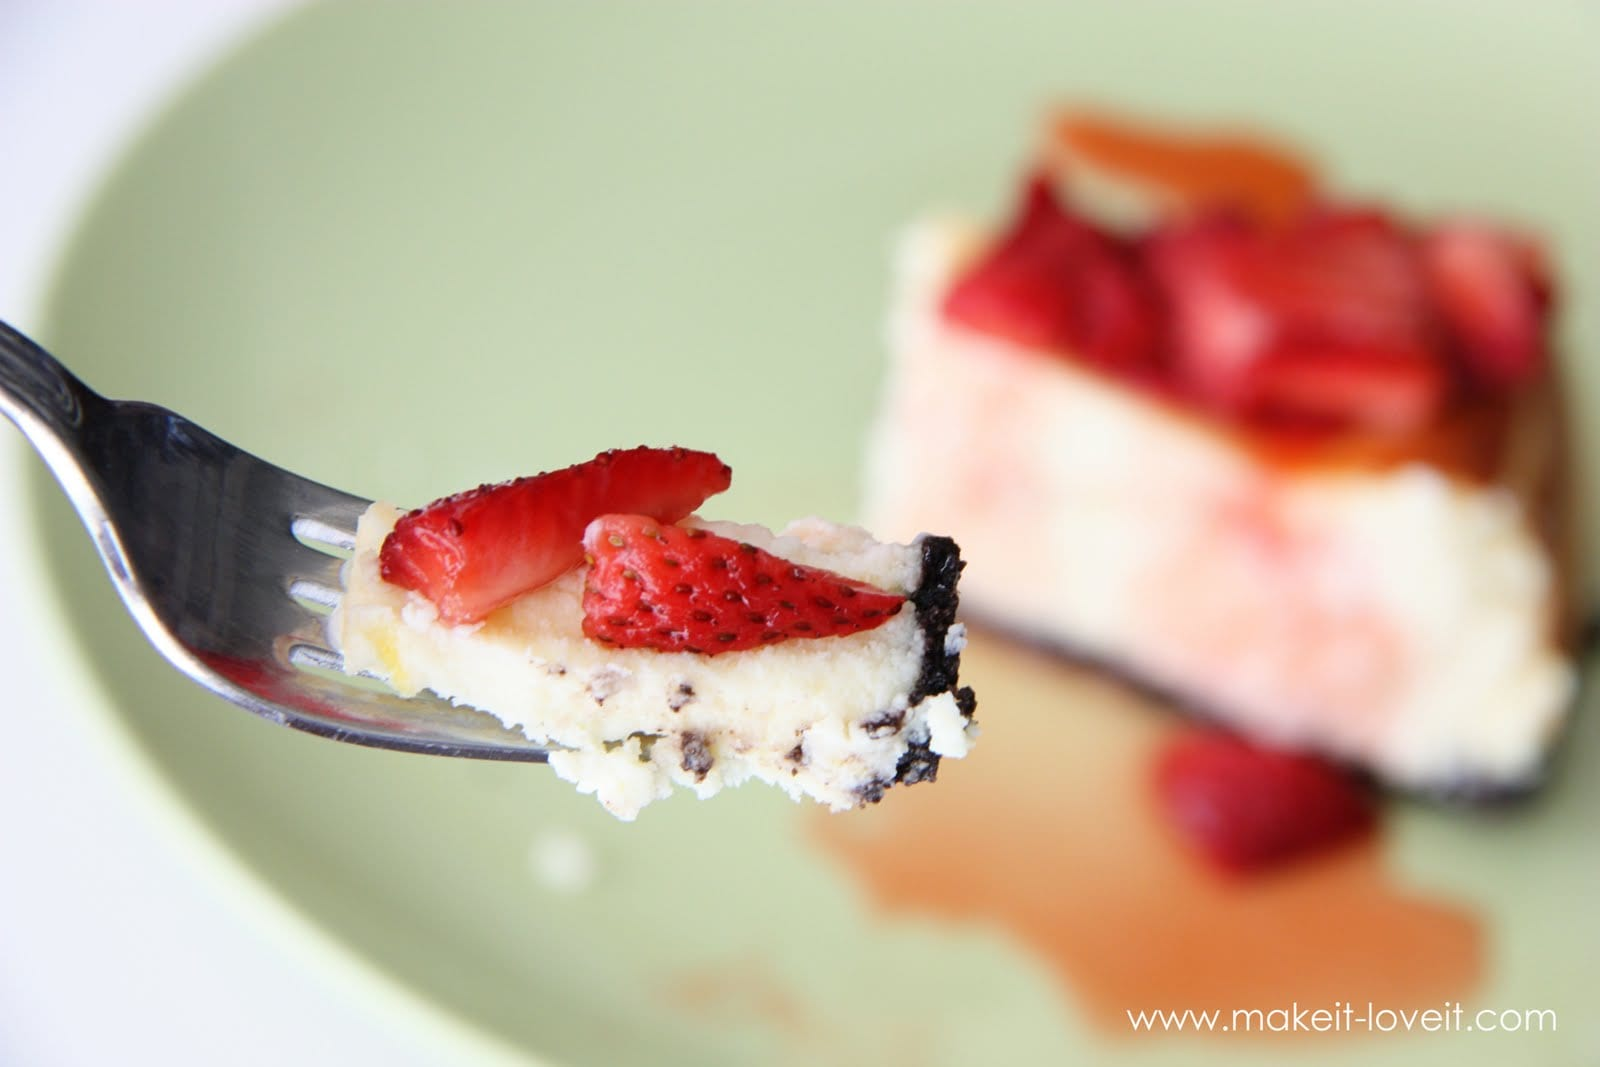 Strawberry Cheesecake: Happy Belated Mother's Day